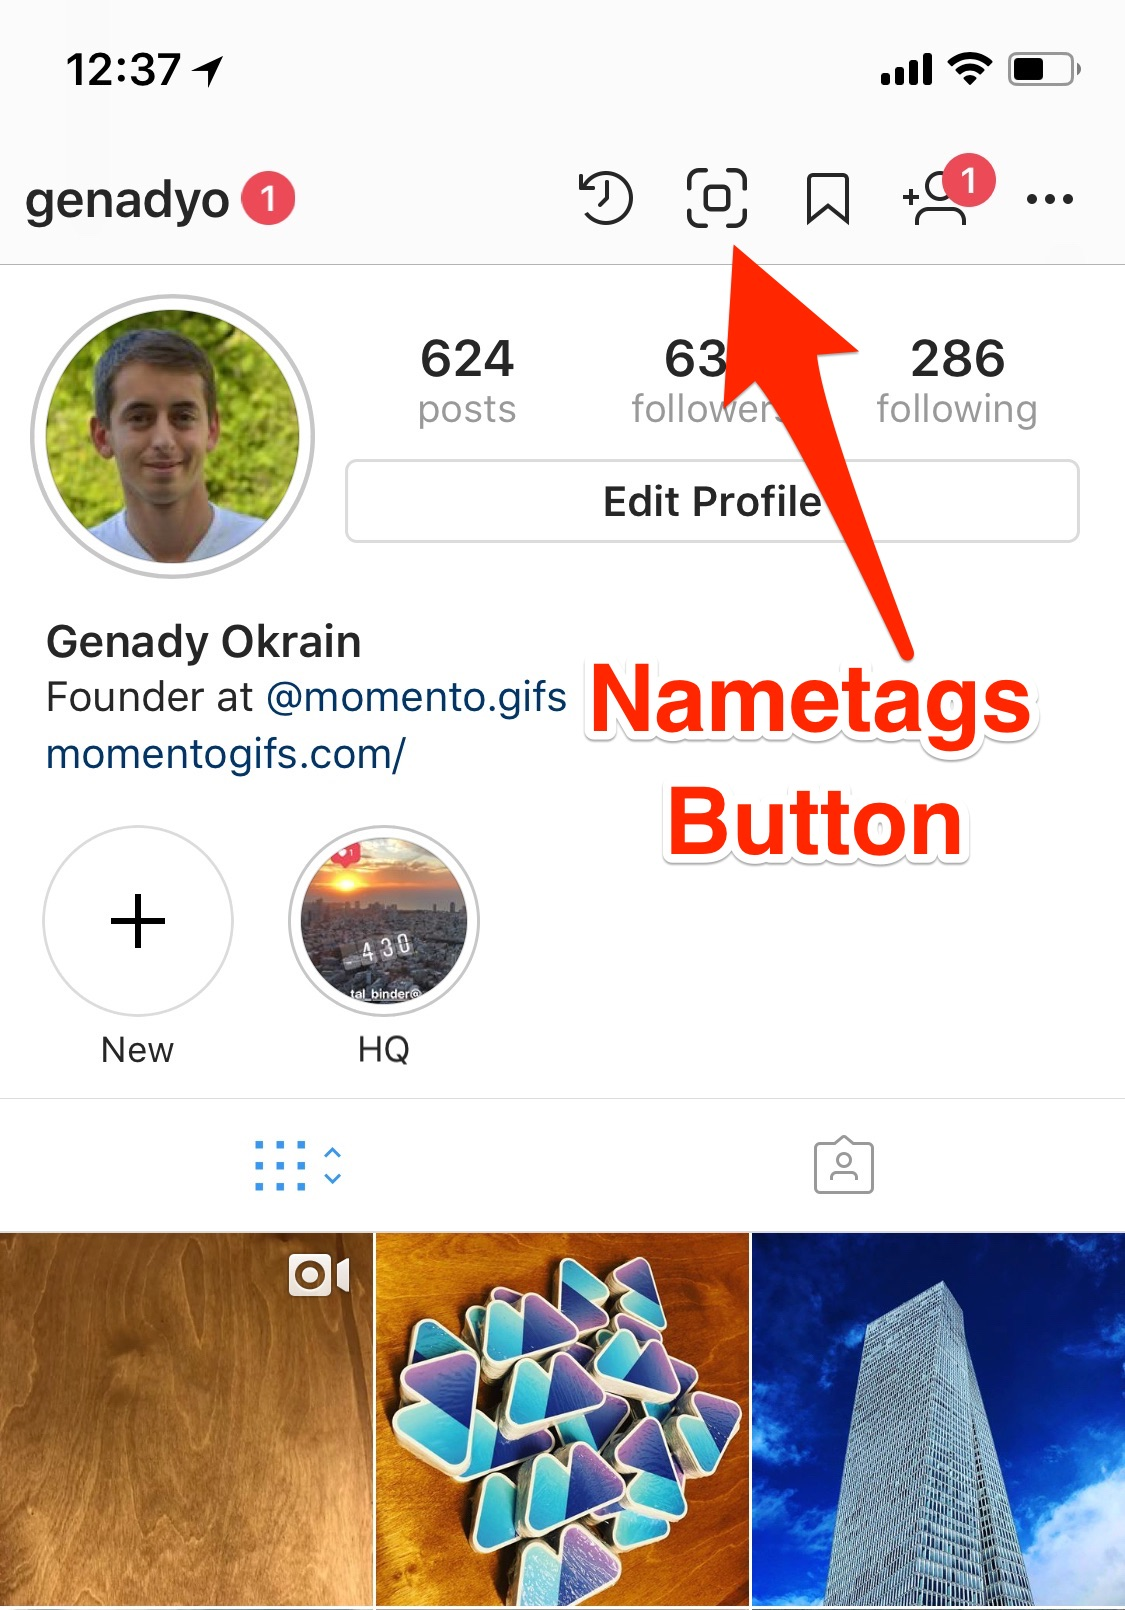 Novo recurso de Nametags do Instagram